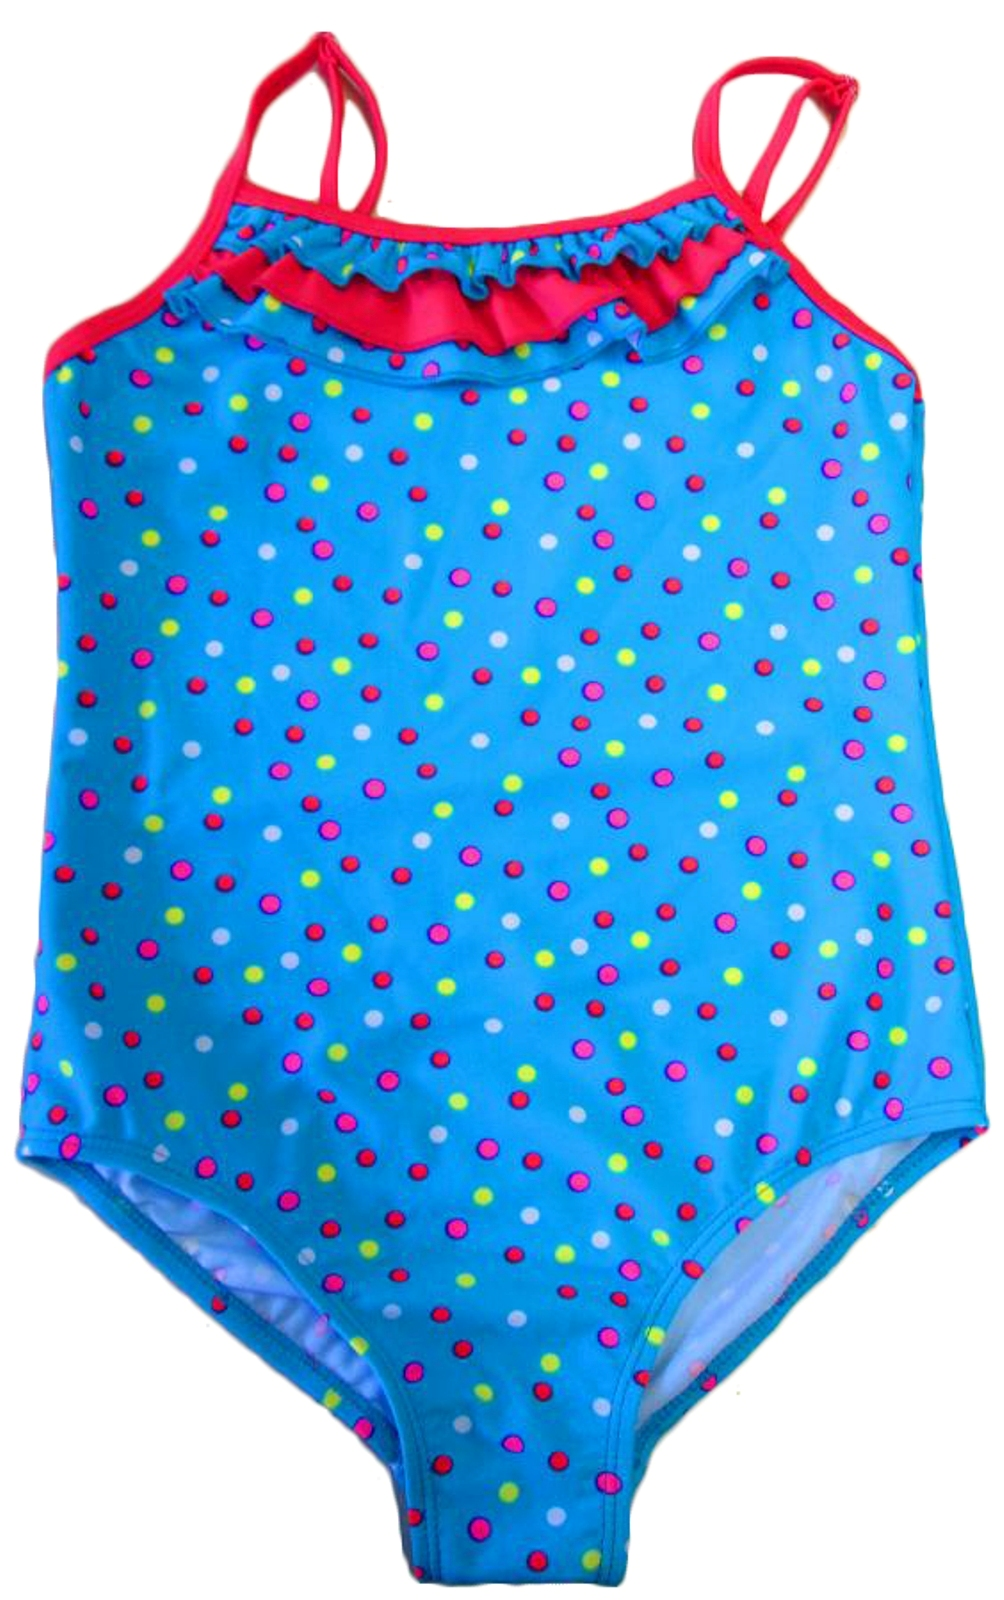 GIRLS CHILDRENS KIDS BIKINI SET SWIMMING COSTUME TANKINI ...